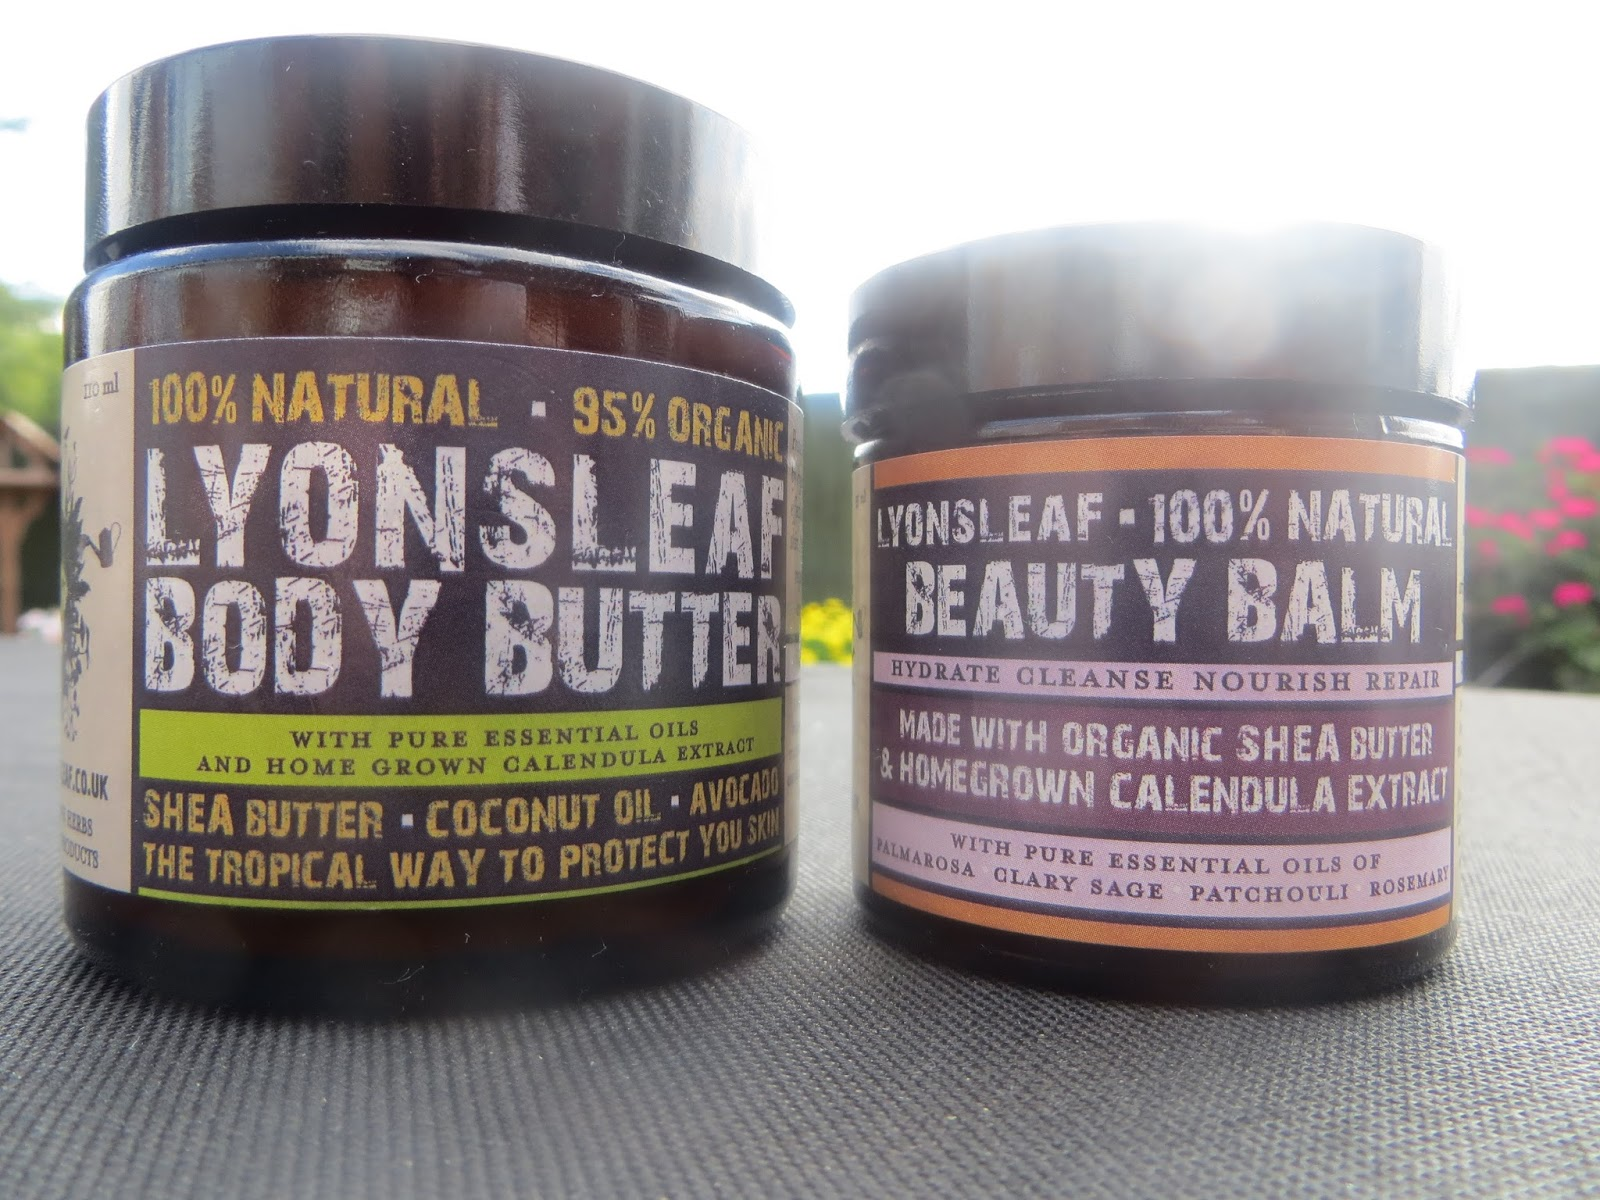 Lyonsleaf Beauty Balm and Body Butter Review